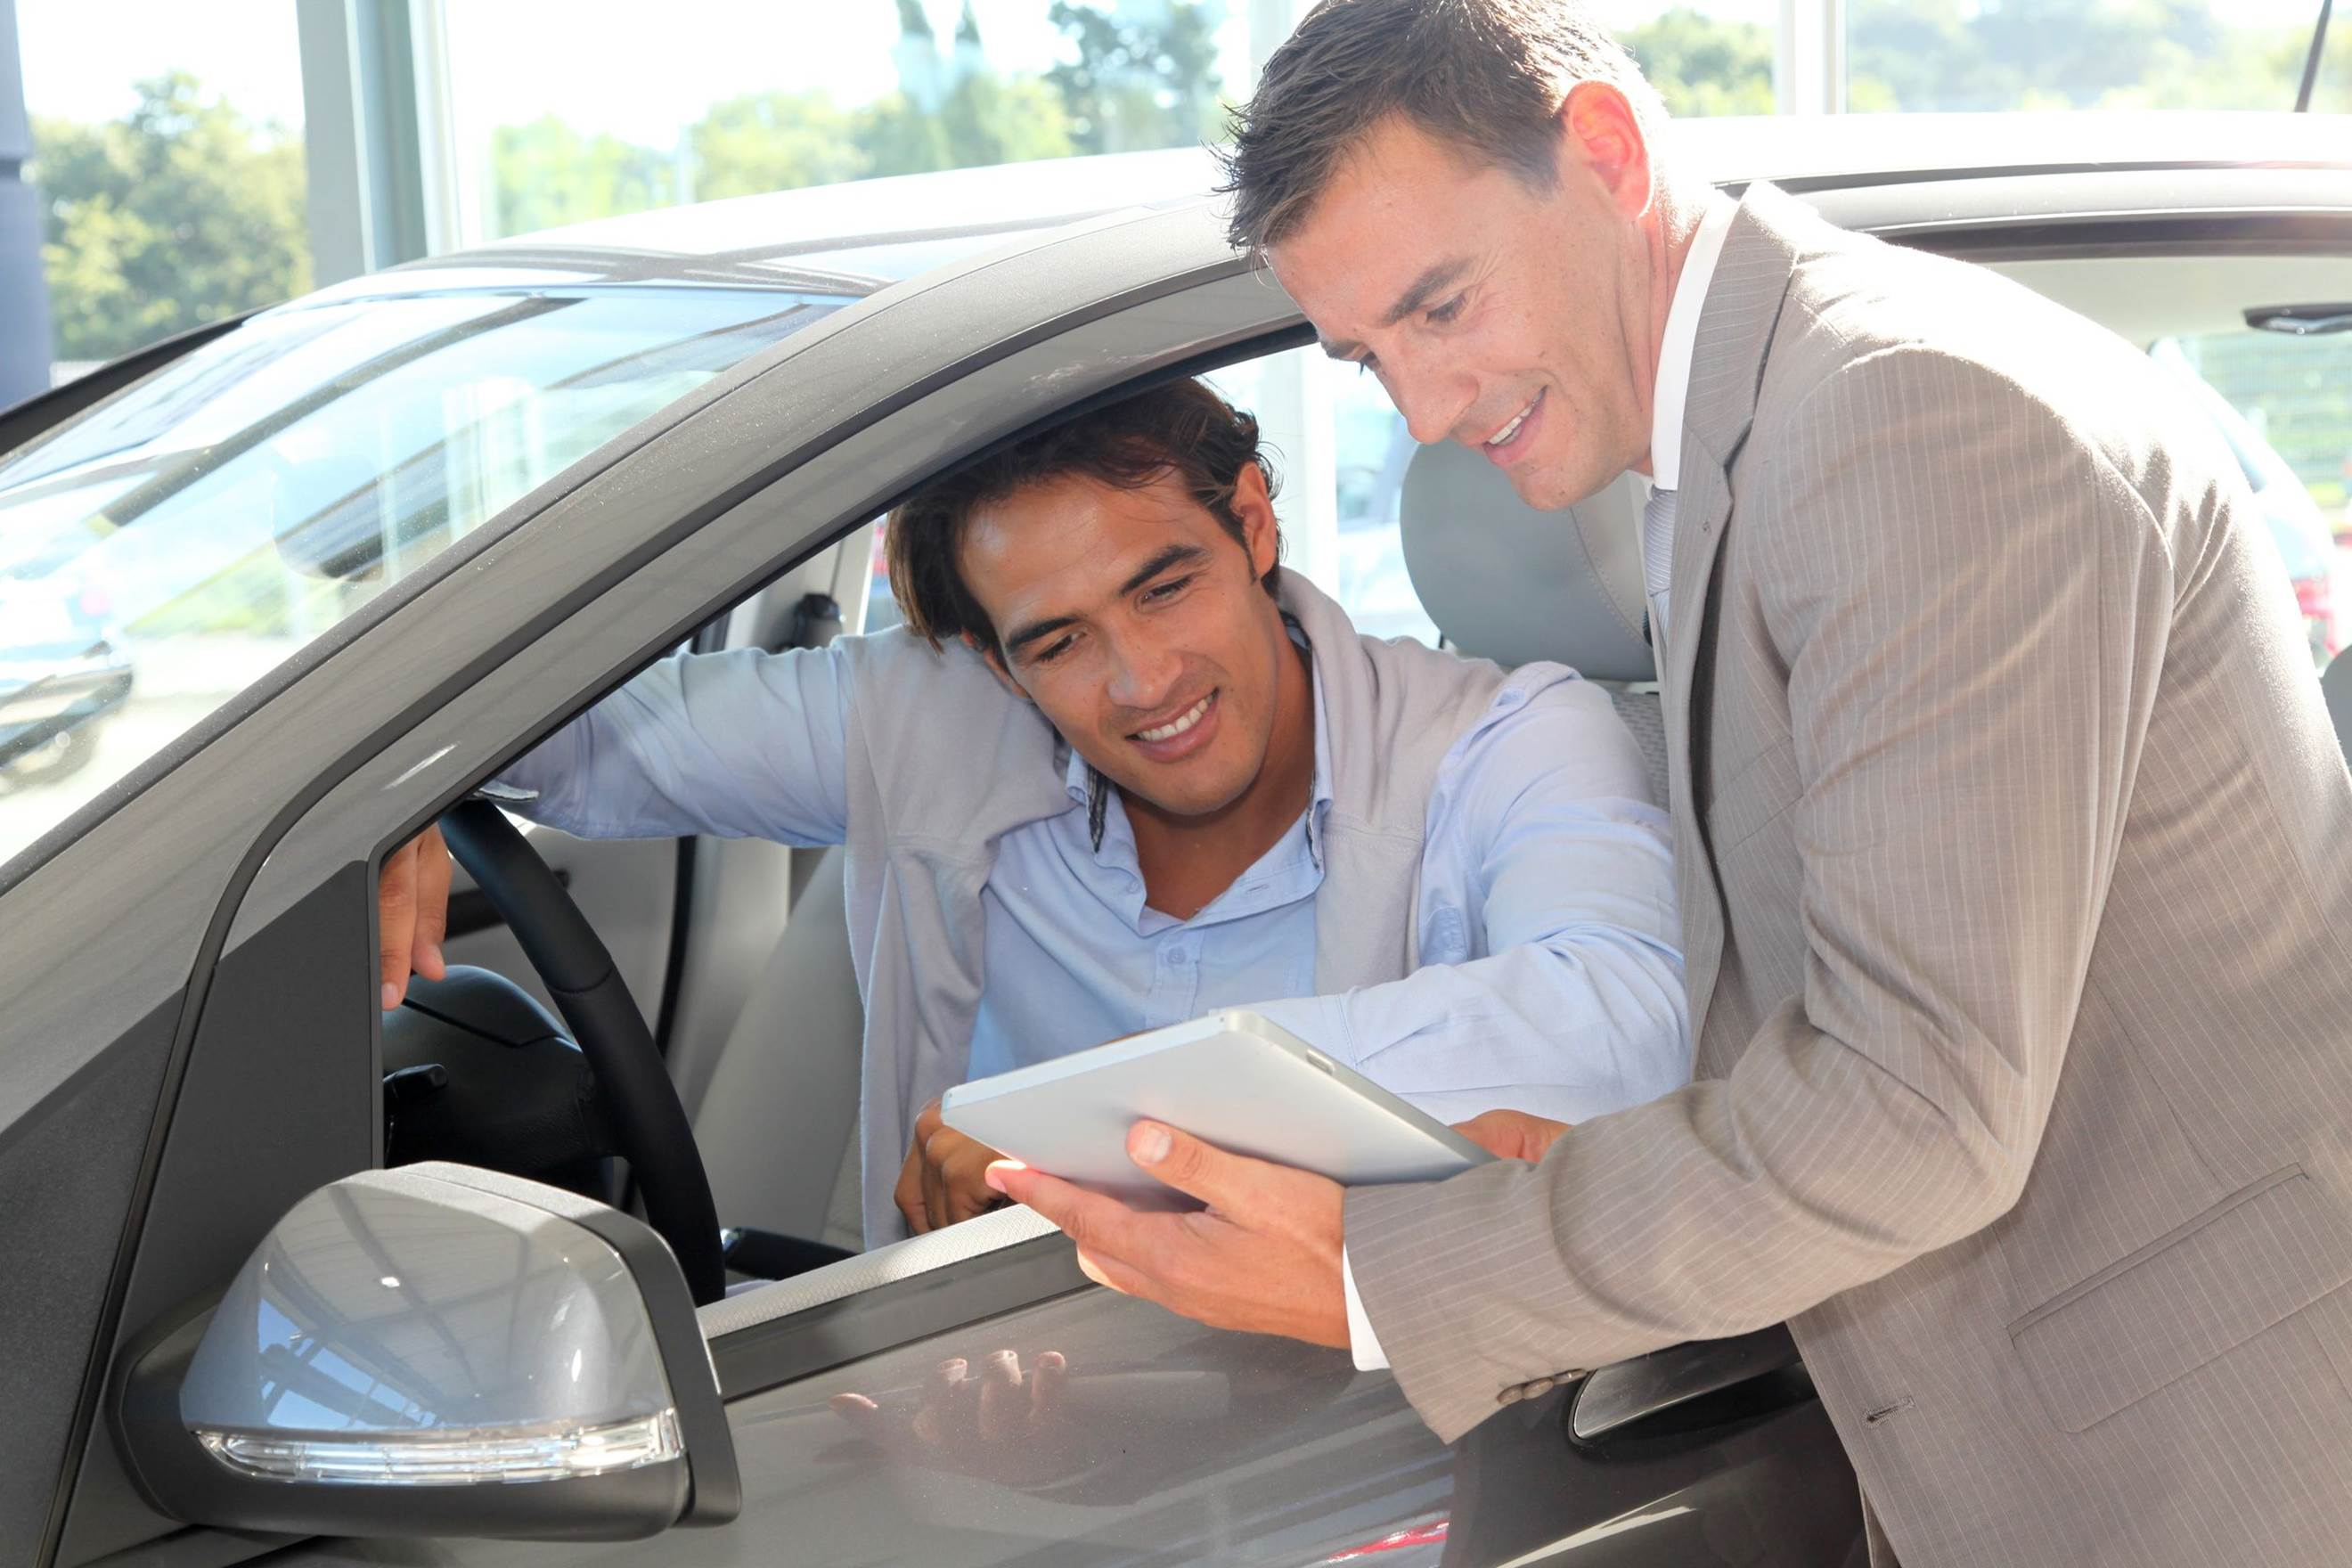 People-First Auto Retailing: How to Keep Up with Shifting Consumer Demands